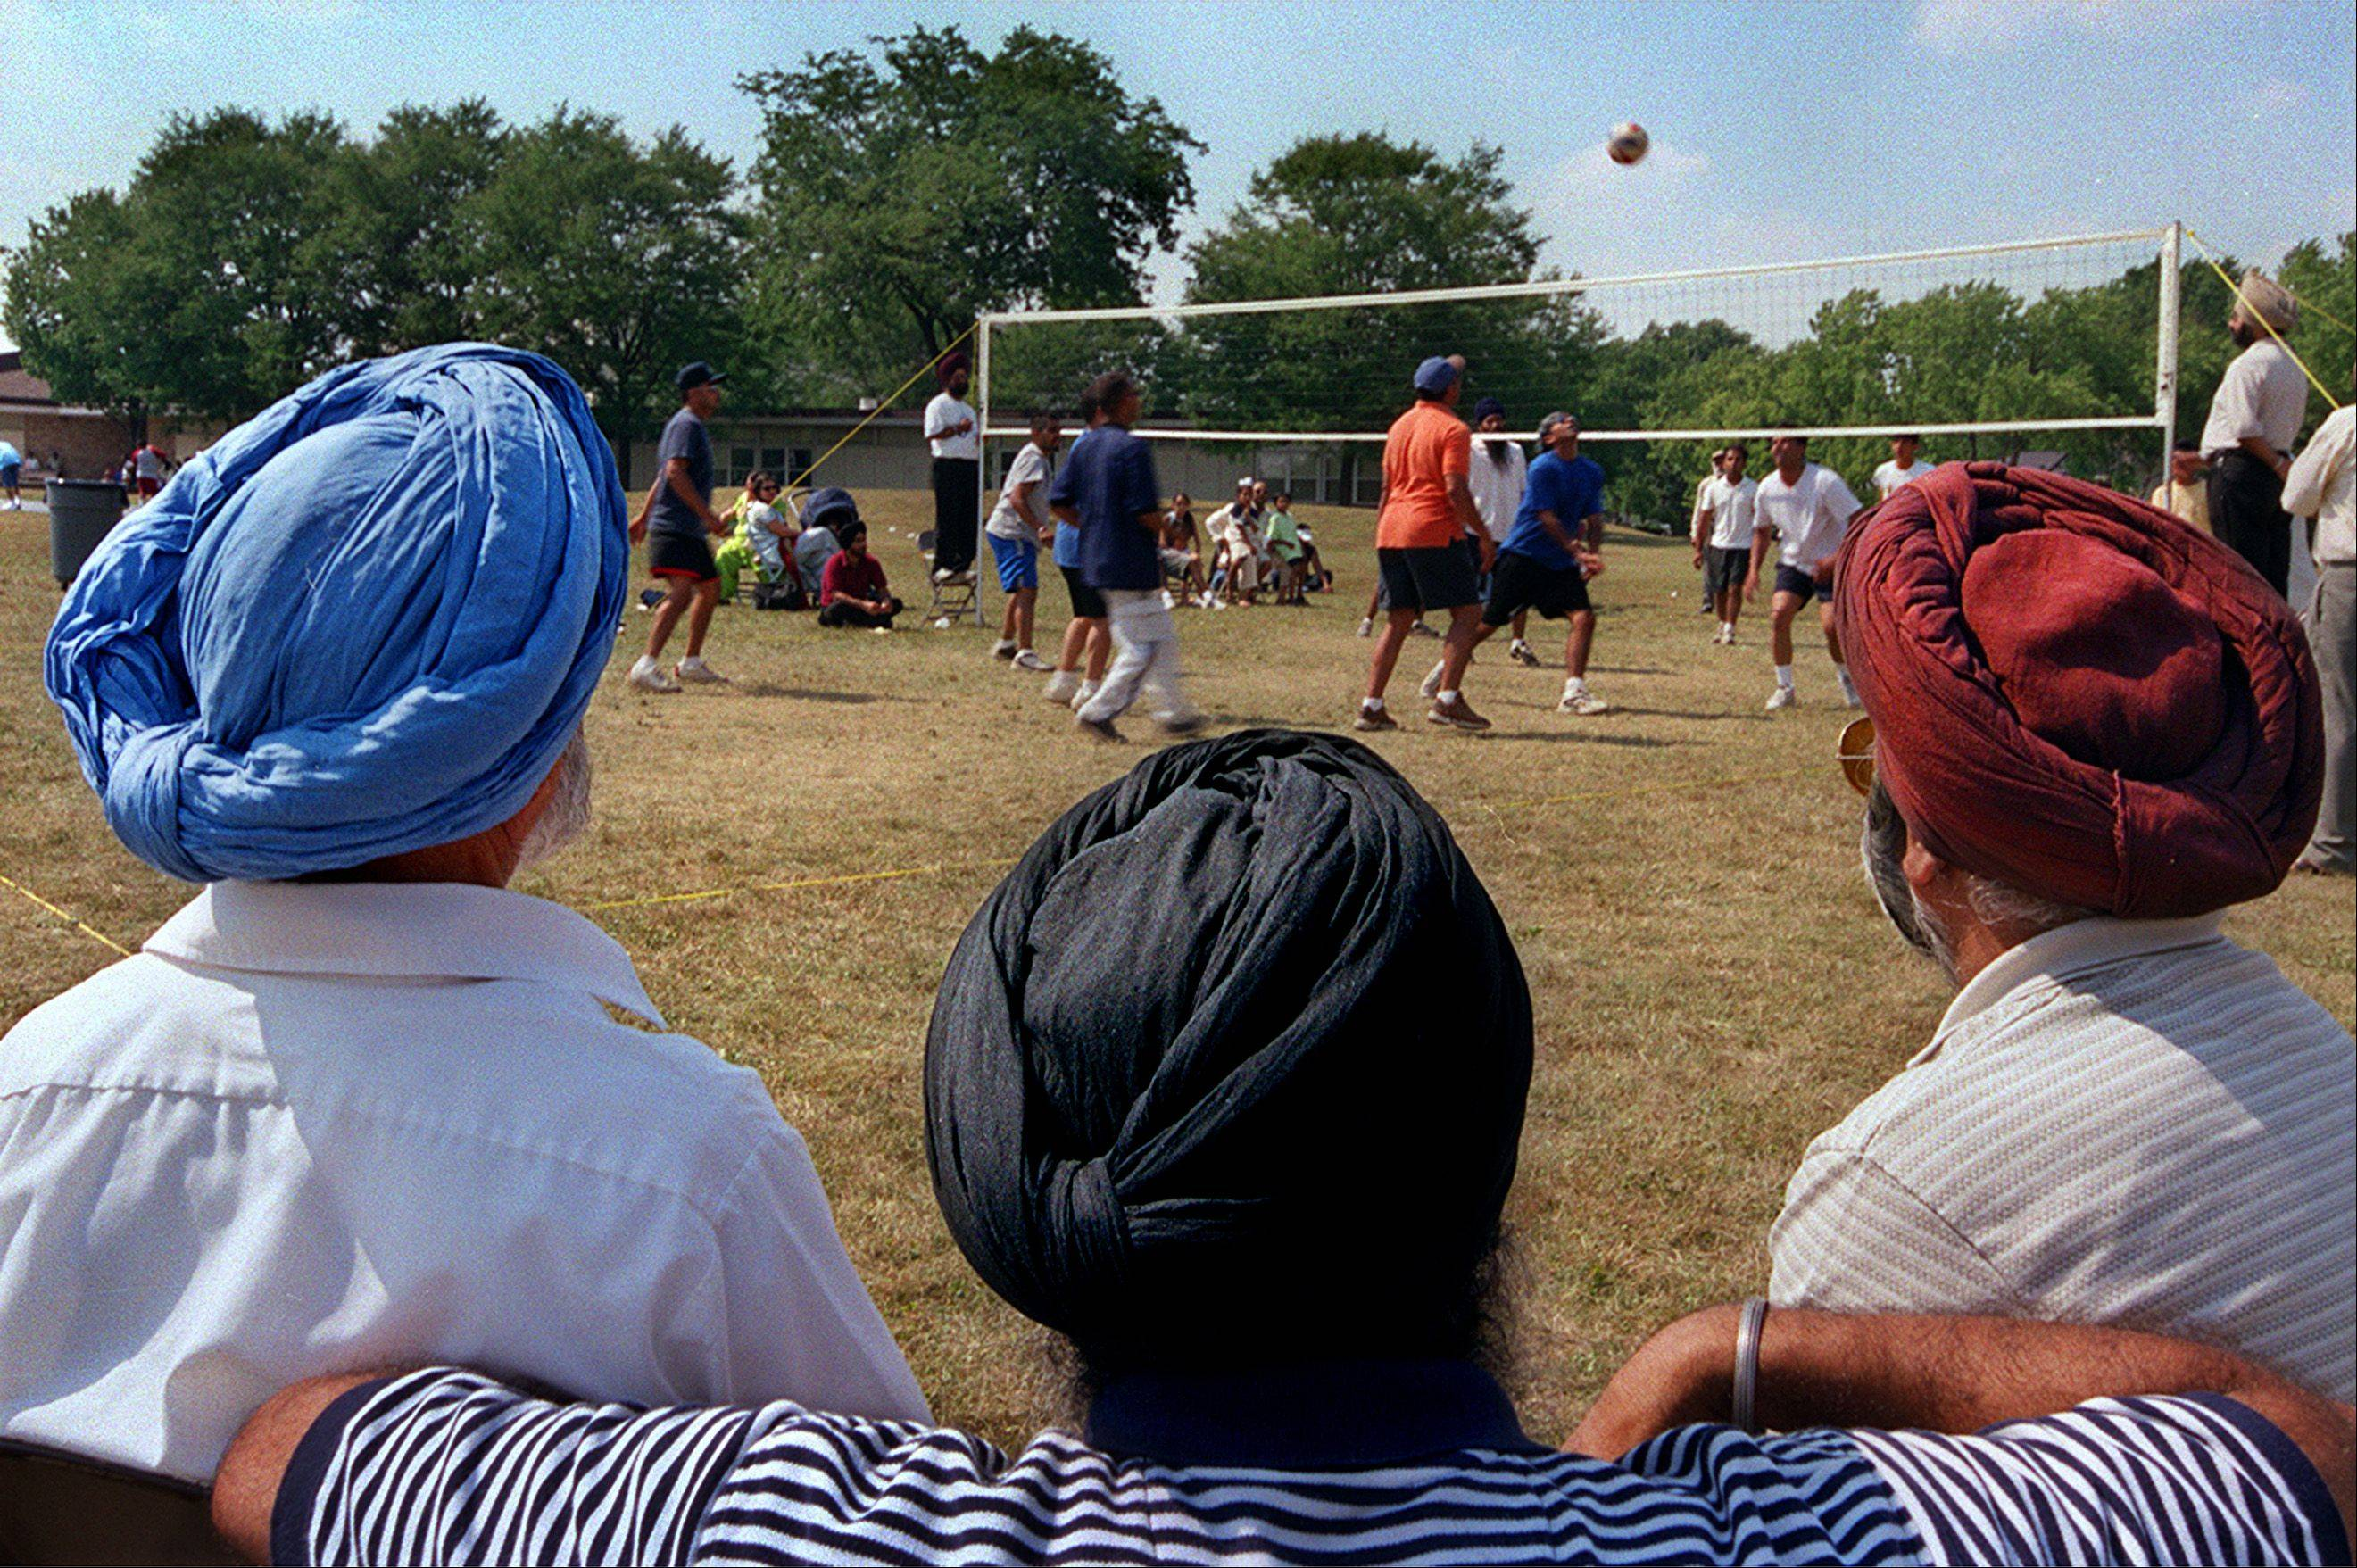 The Punjabi Cultural Society of Chicago will hold its 19th annual Punjabi Sports Festival this Saturday in Palatine. The festival features athletic competitions and free samples of Punjabi cuisine.